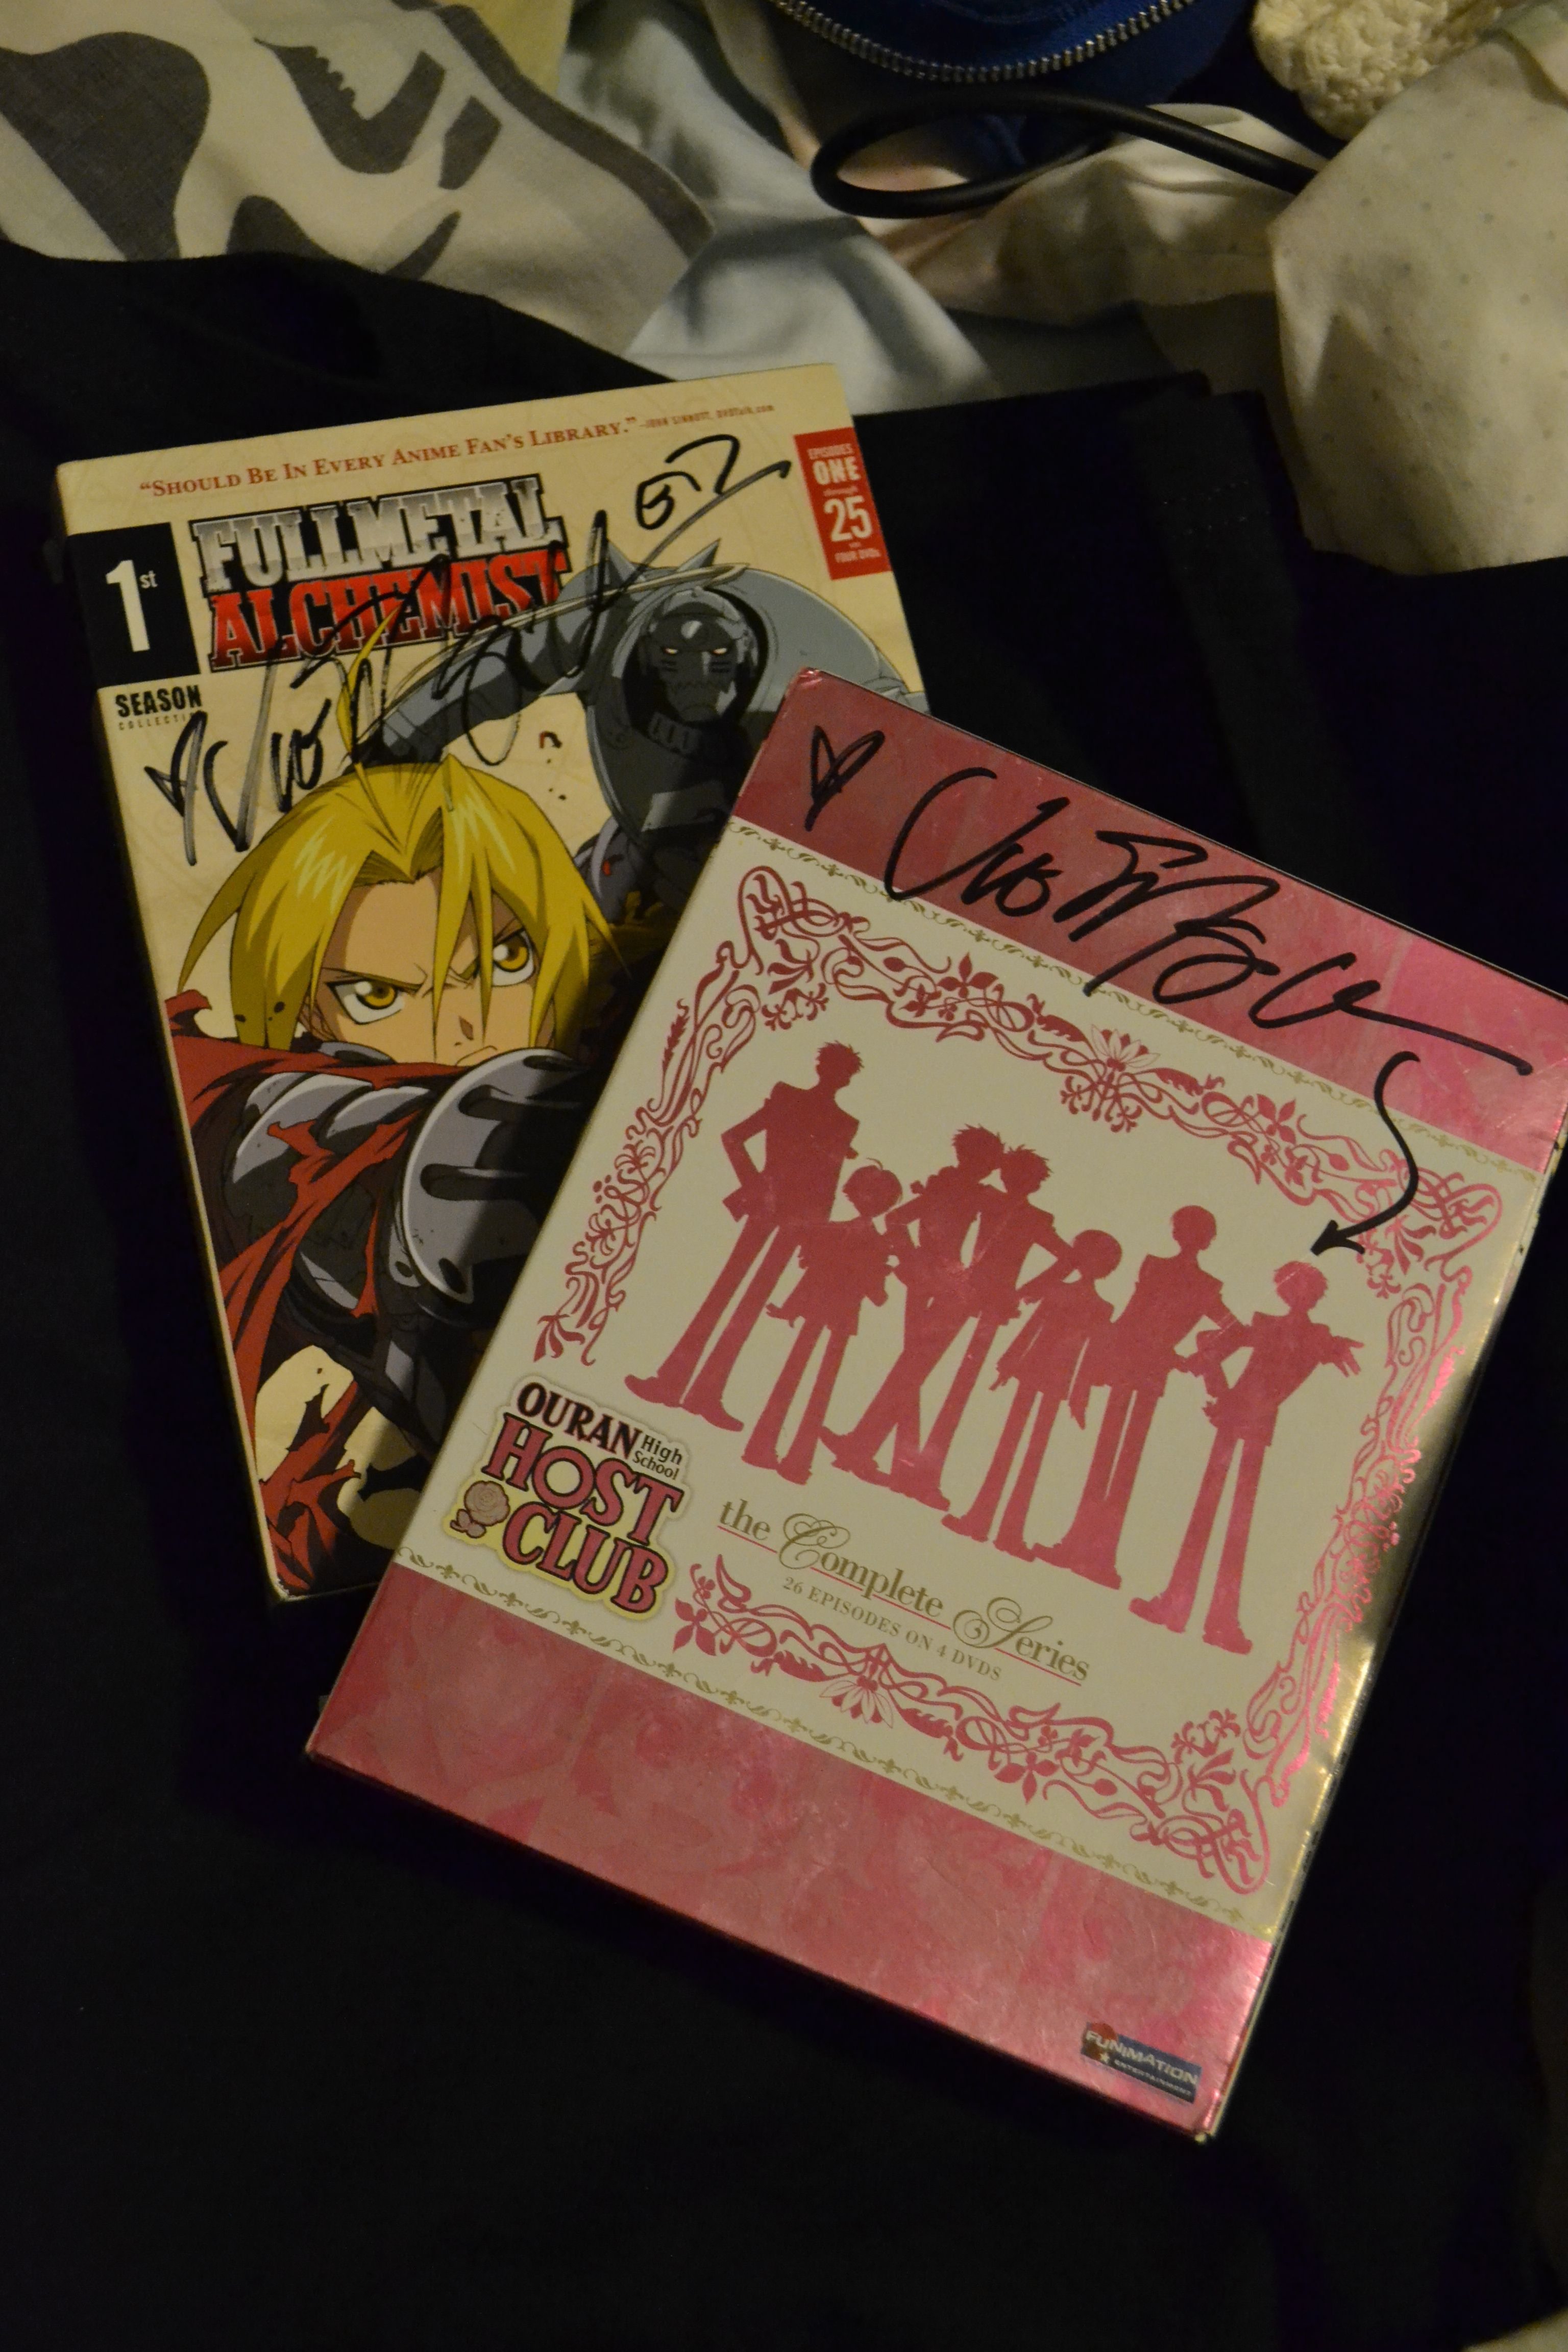 FMA & OHSHC - Signed by Vic Mignogna <3 WoW he put an arrow to tamaki wow just wow